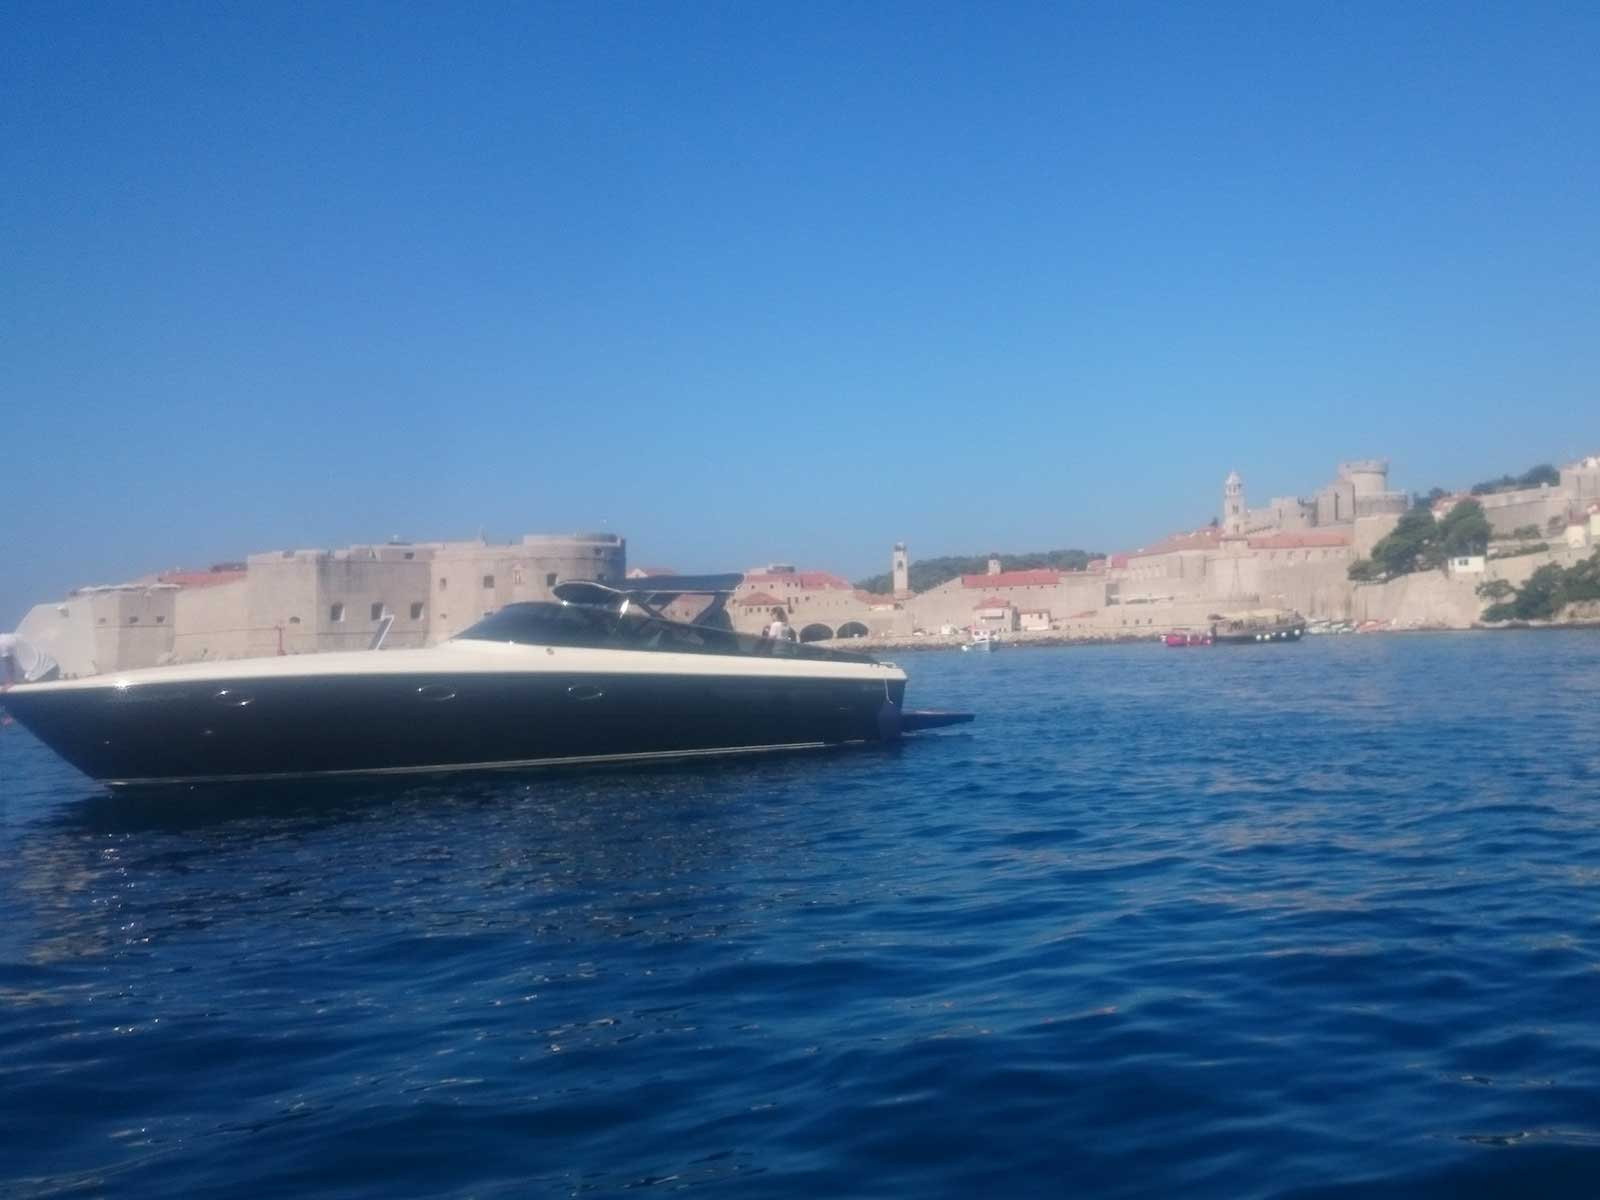 -images-excursions-elaphite-islands-speed-boat-excursion--a-luxury-yacht-itama-40-day-charter-dubrovnik.jpg